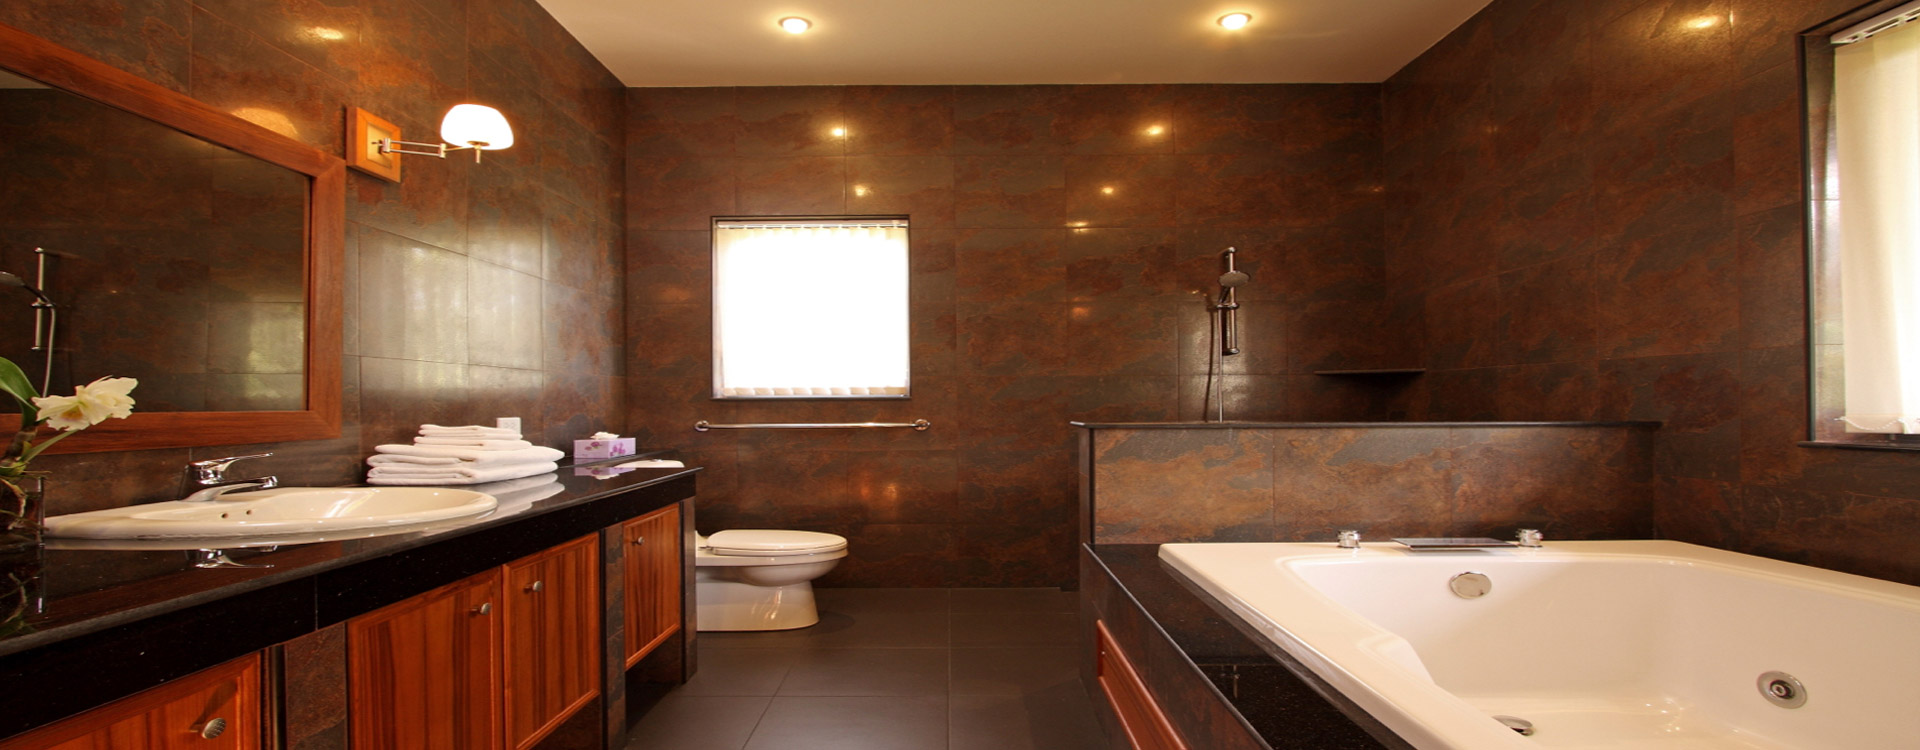 Villa2 Bathroom